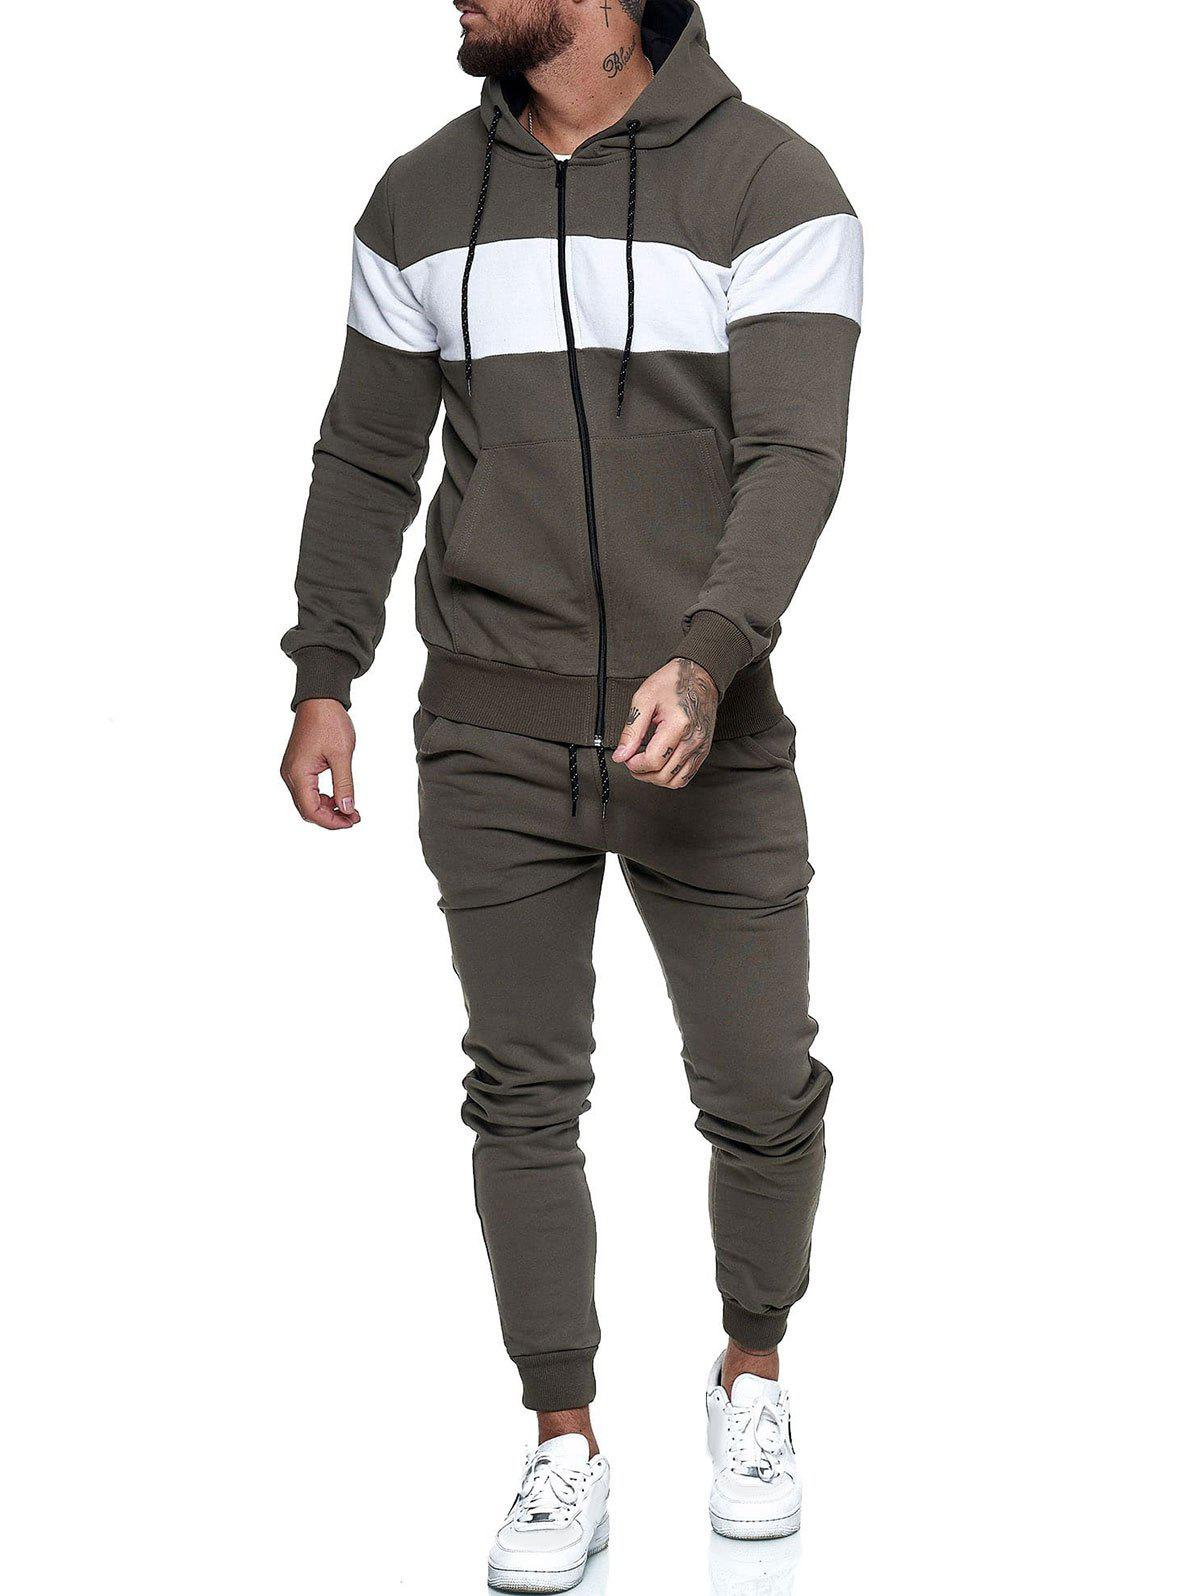 Shop Contrast Zip Up Hoodie Jacket and Pants Sports Two Piece Set